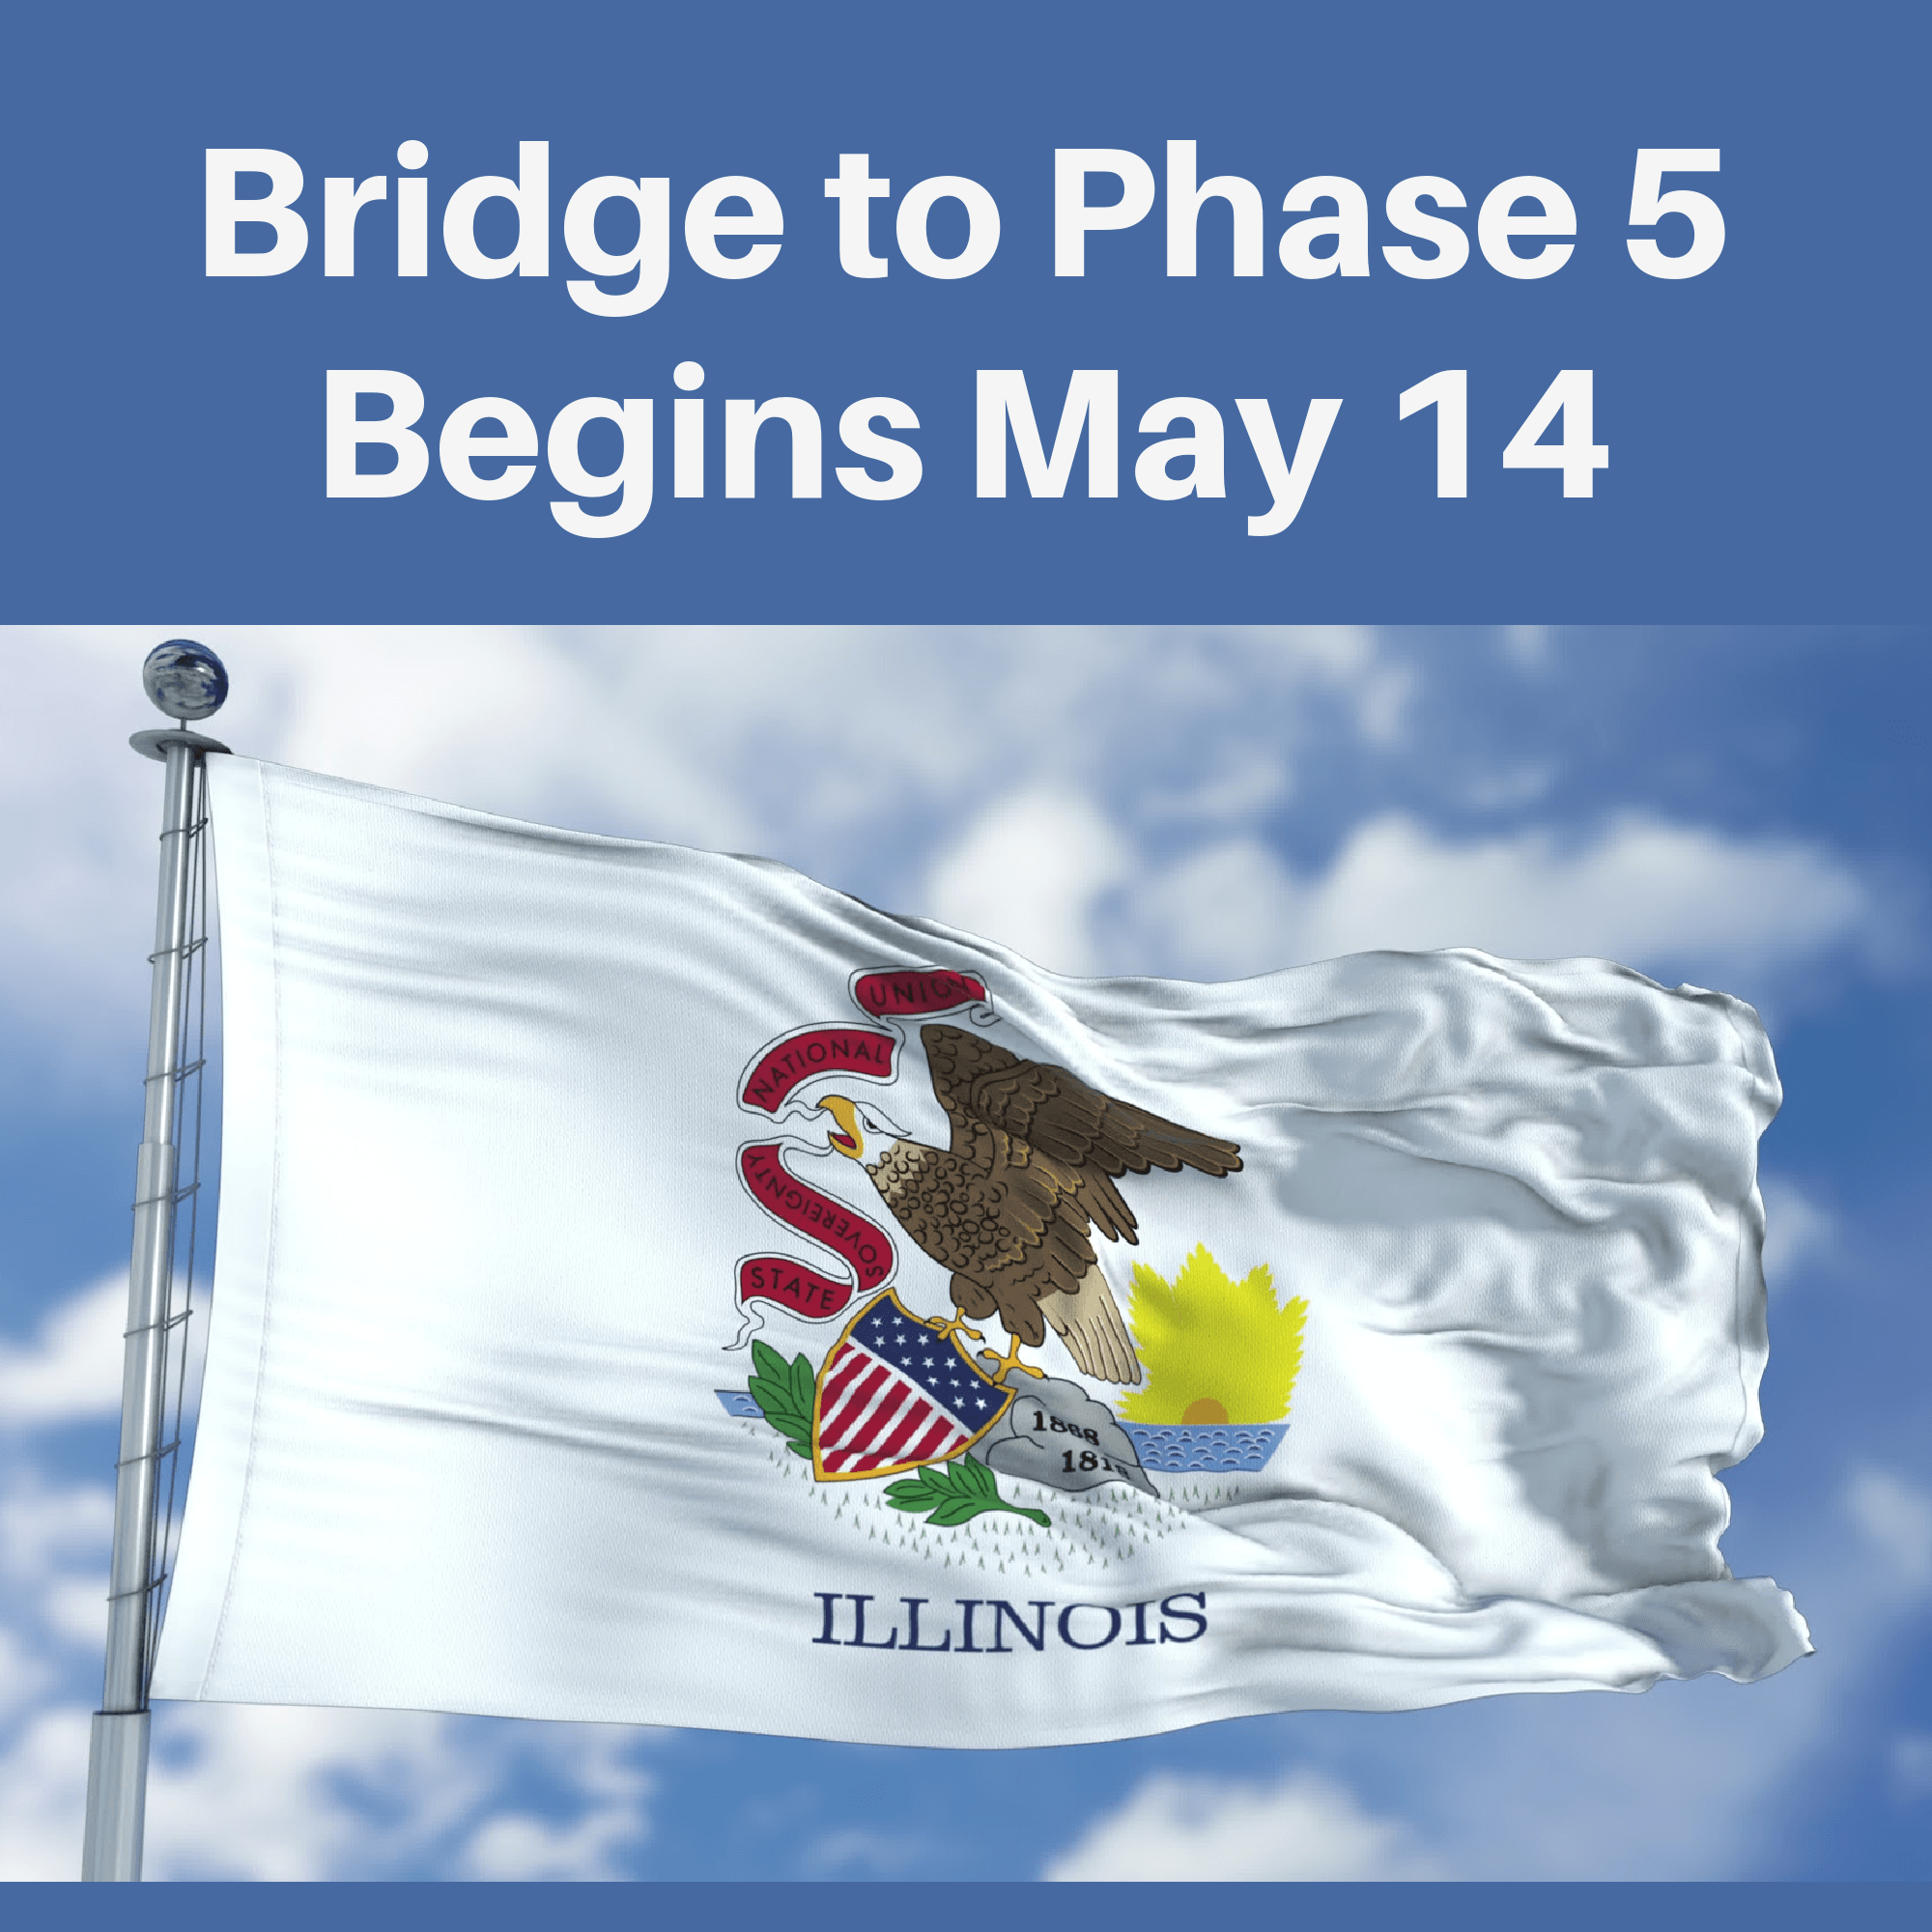 Bridge to Phase 5